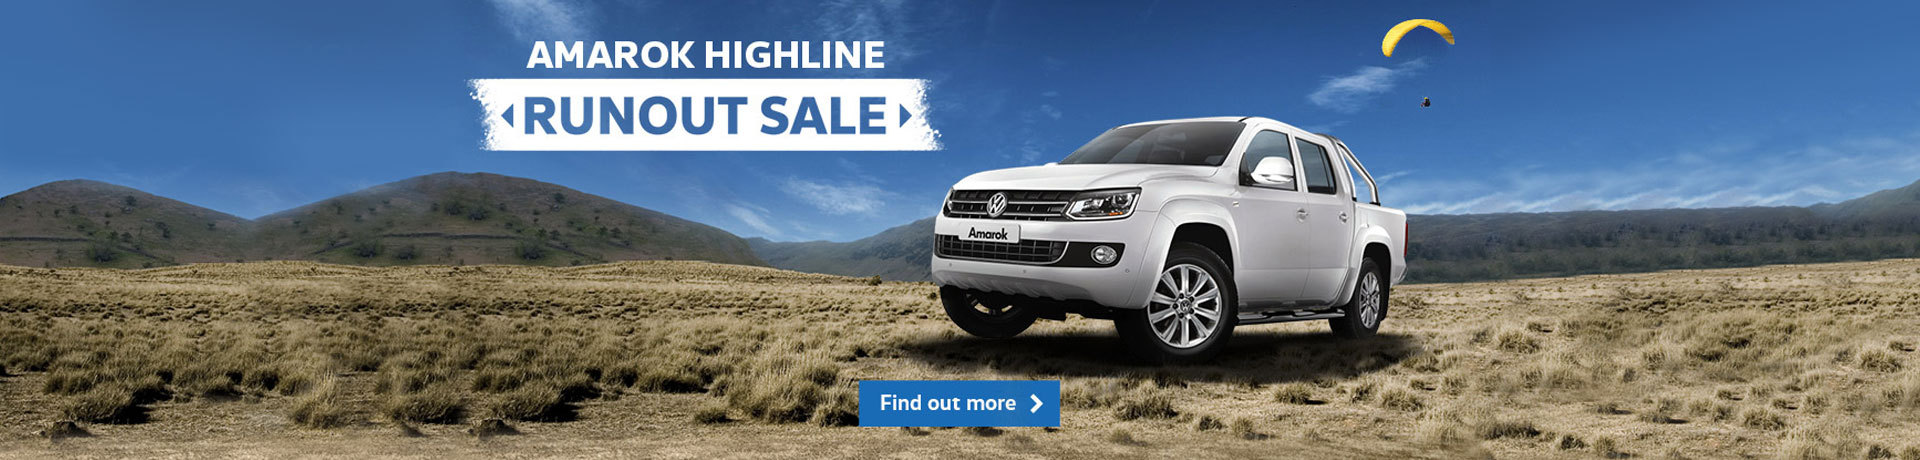 Amarok Highline - From $53,990 Plus Free 8-Spreed Auto and $2000 Cashback